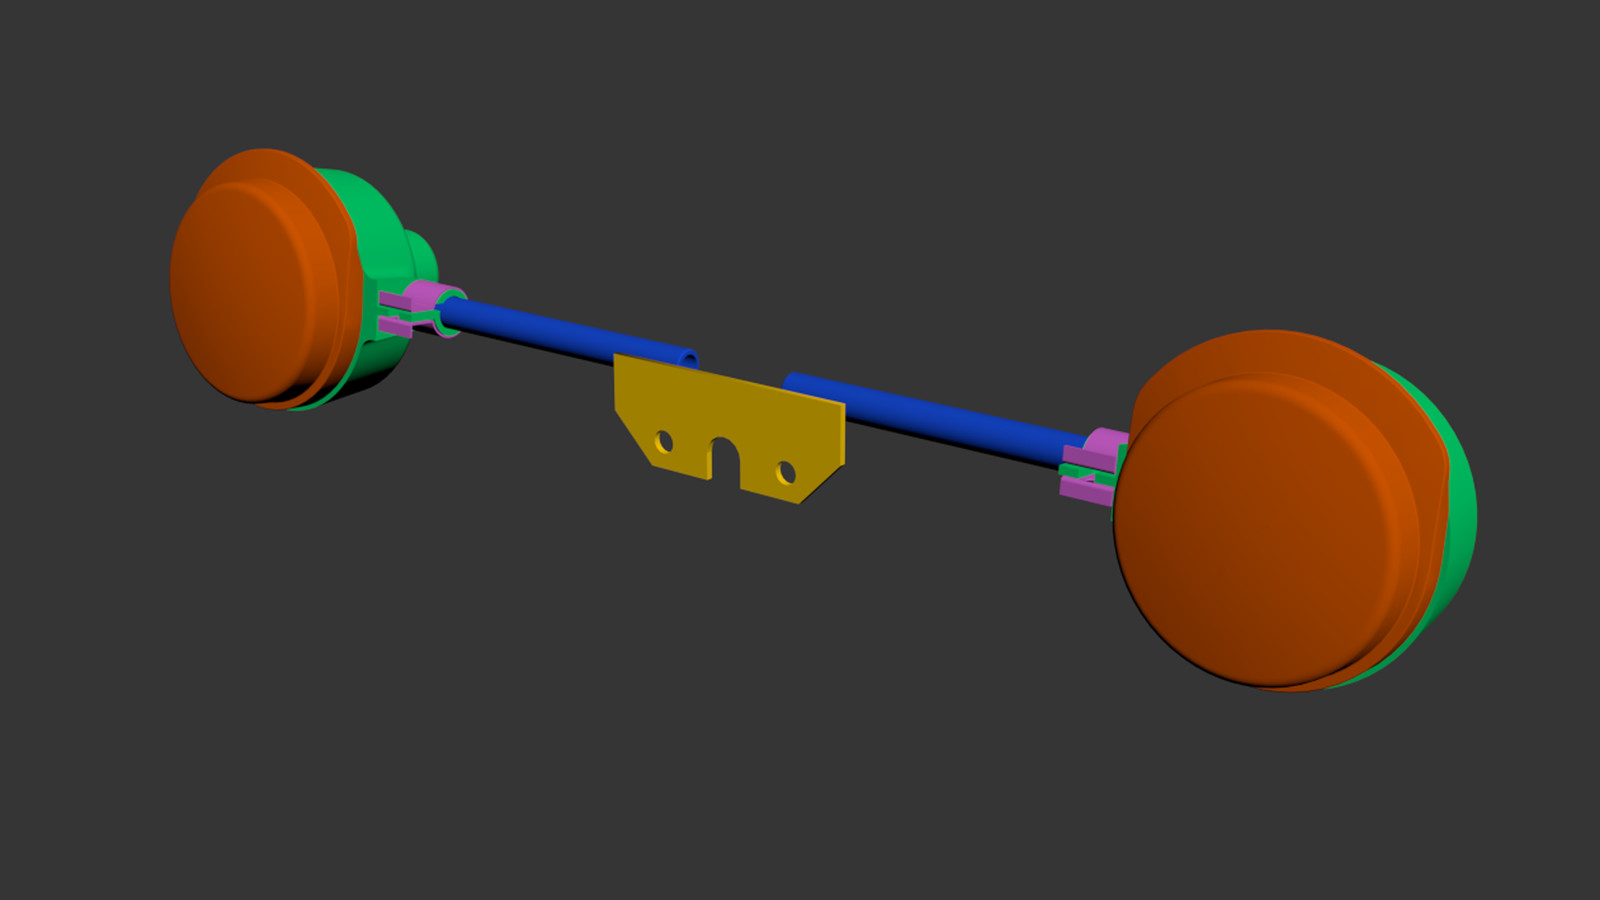 3D model with color coding for UDIMs